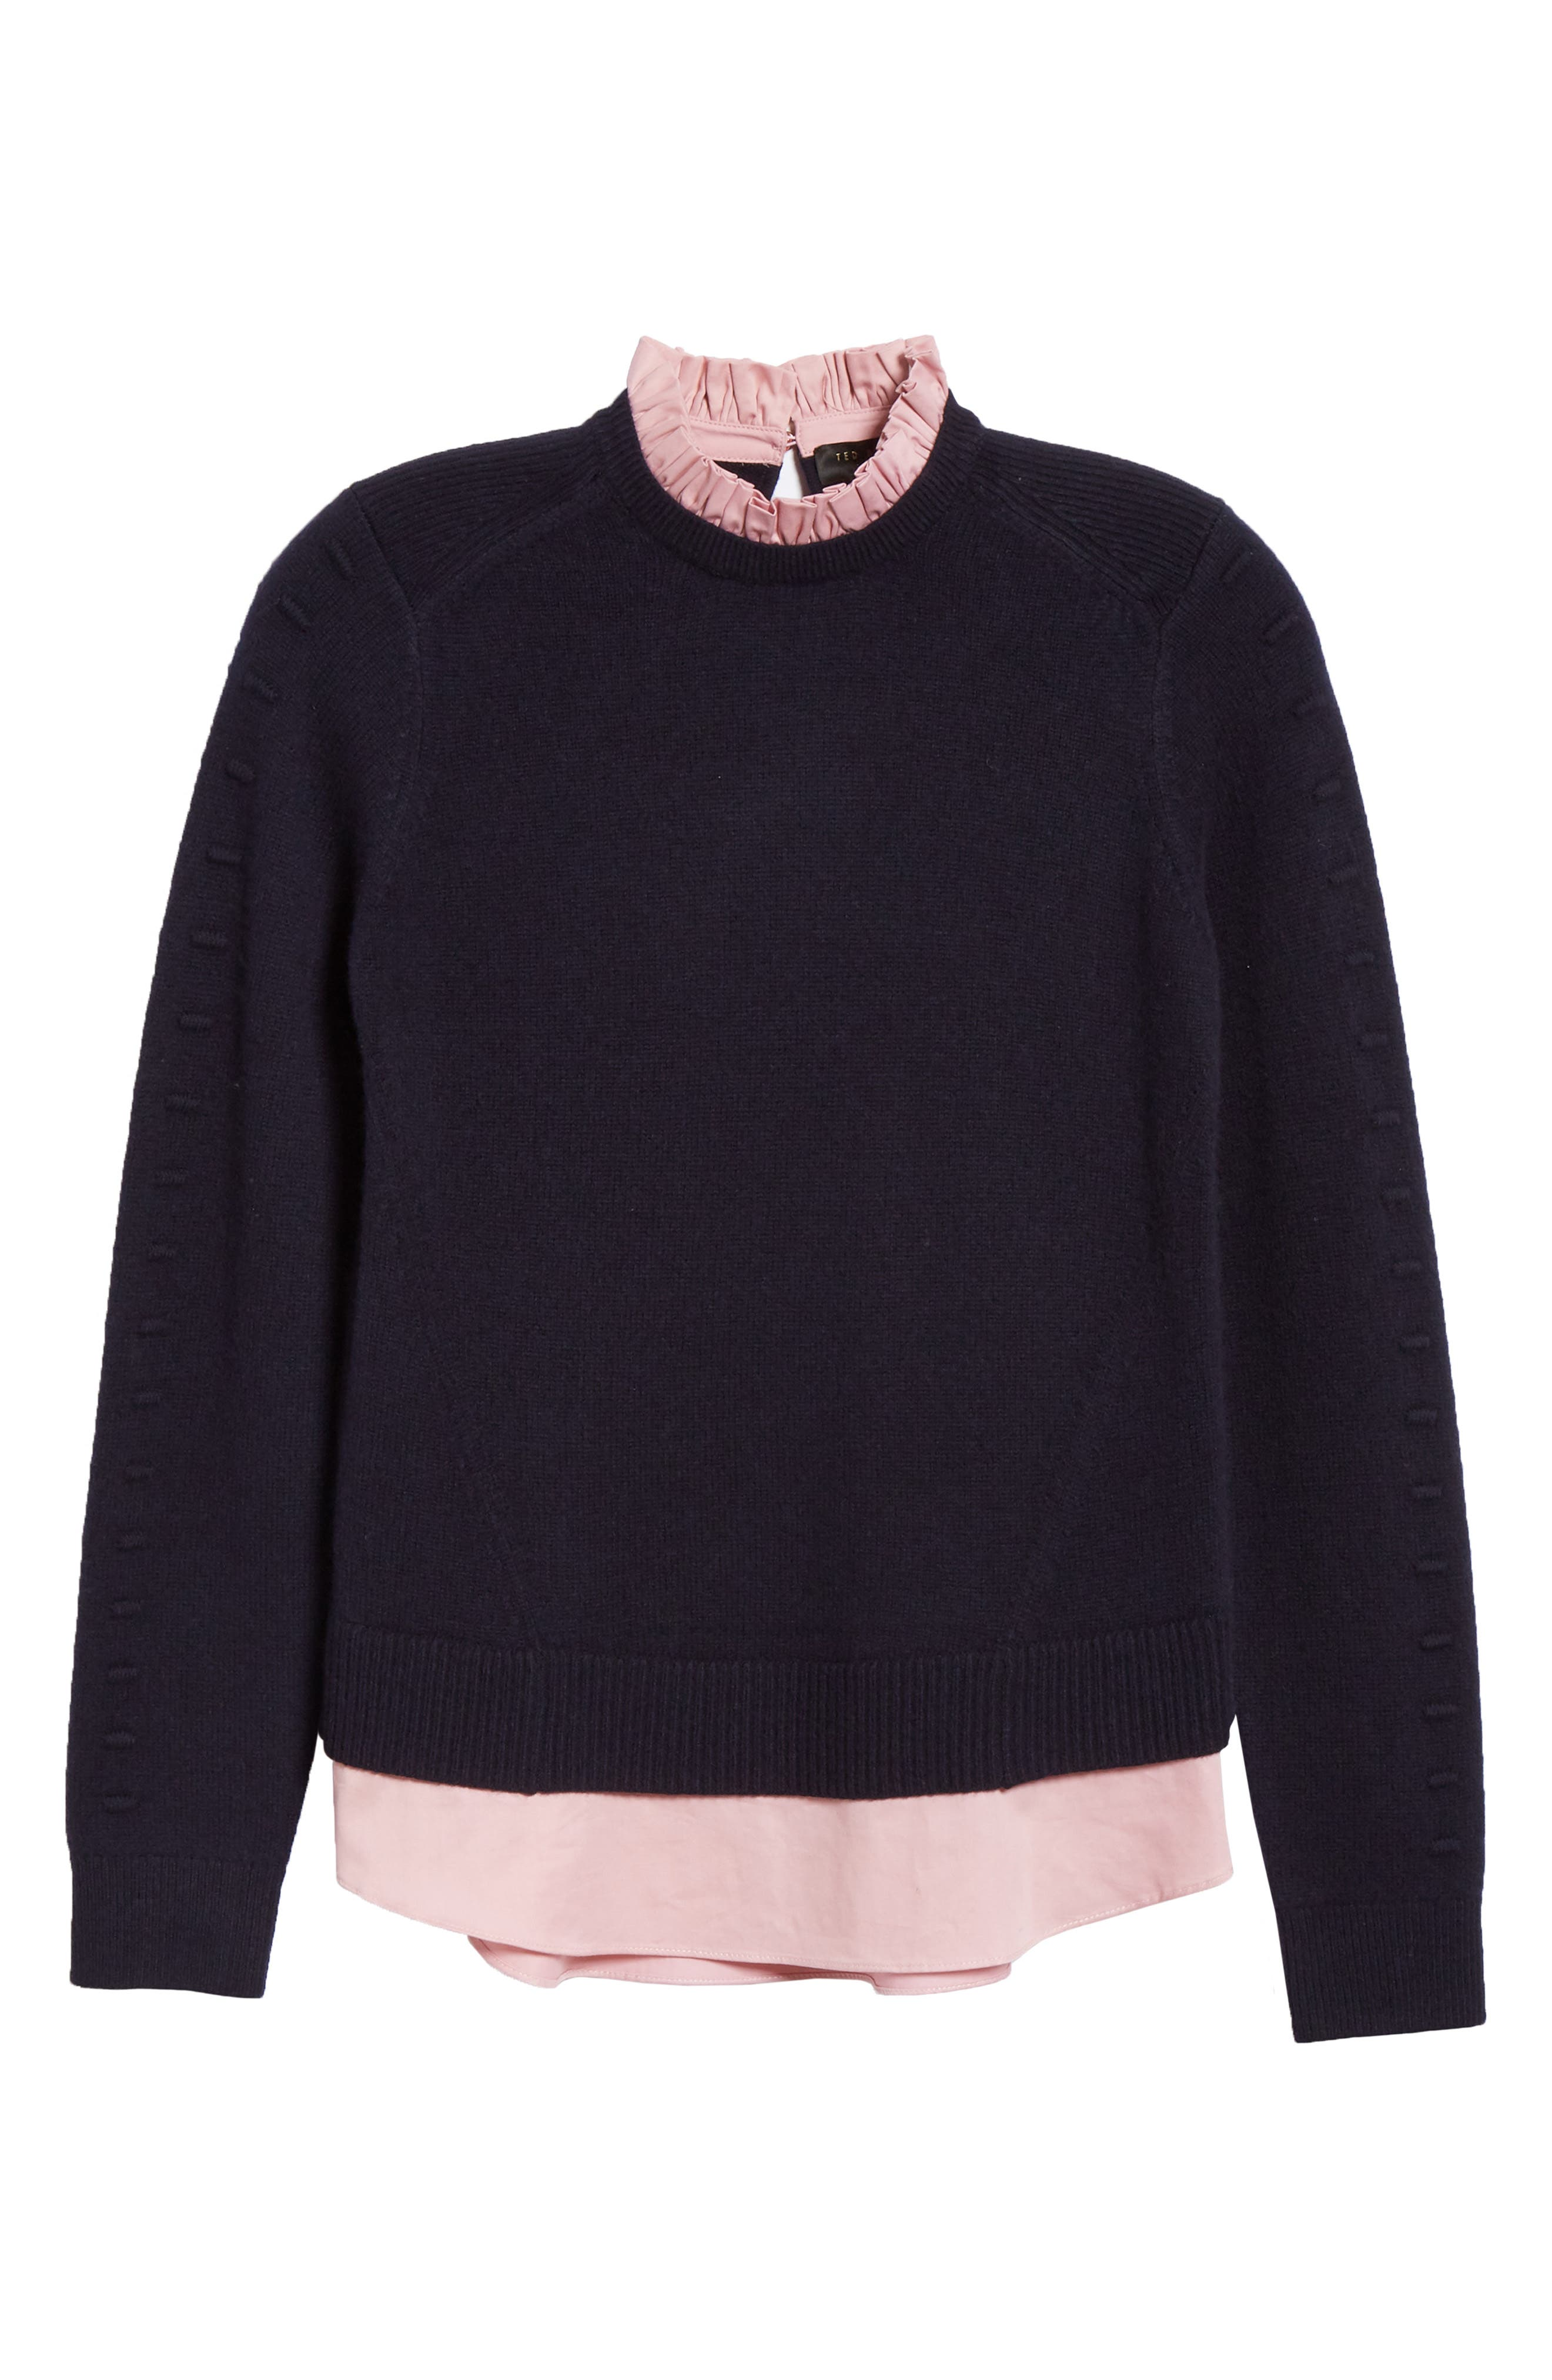 TED BAKER LONDON, Mock Two-Piece Sweater, Alternate thumbnail 6, color, NAVY